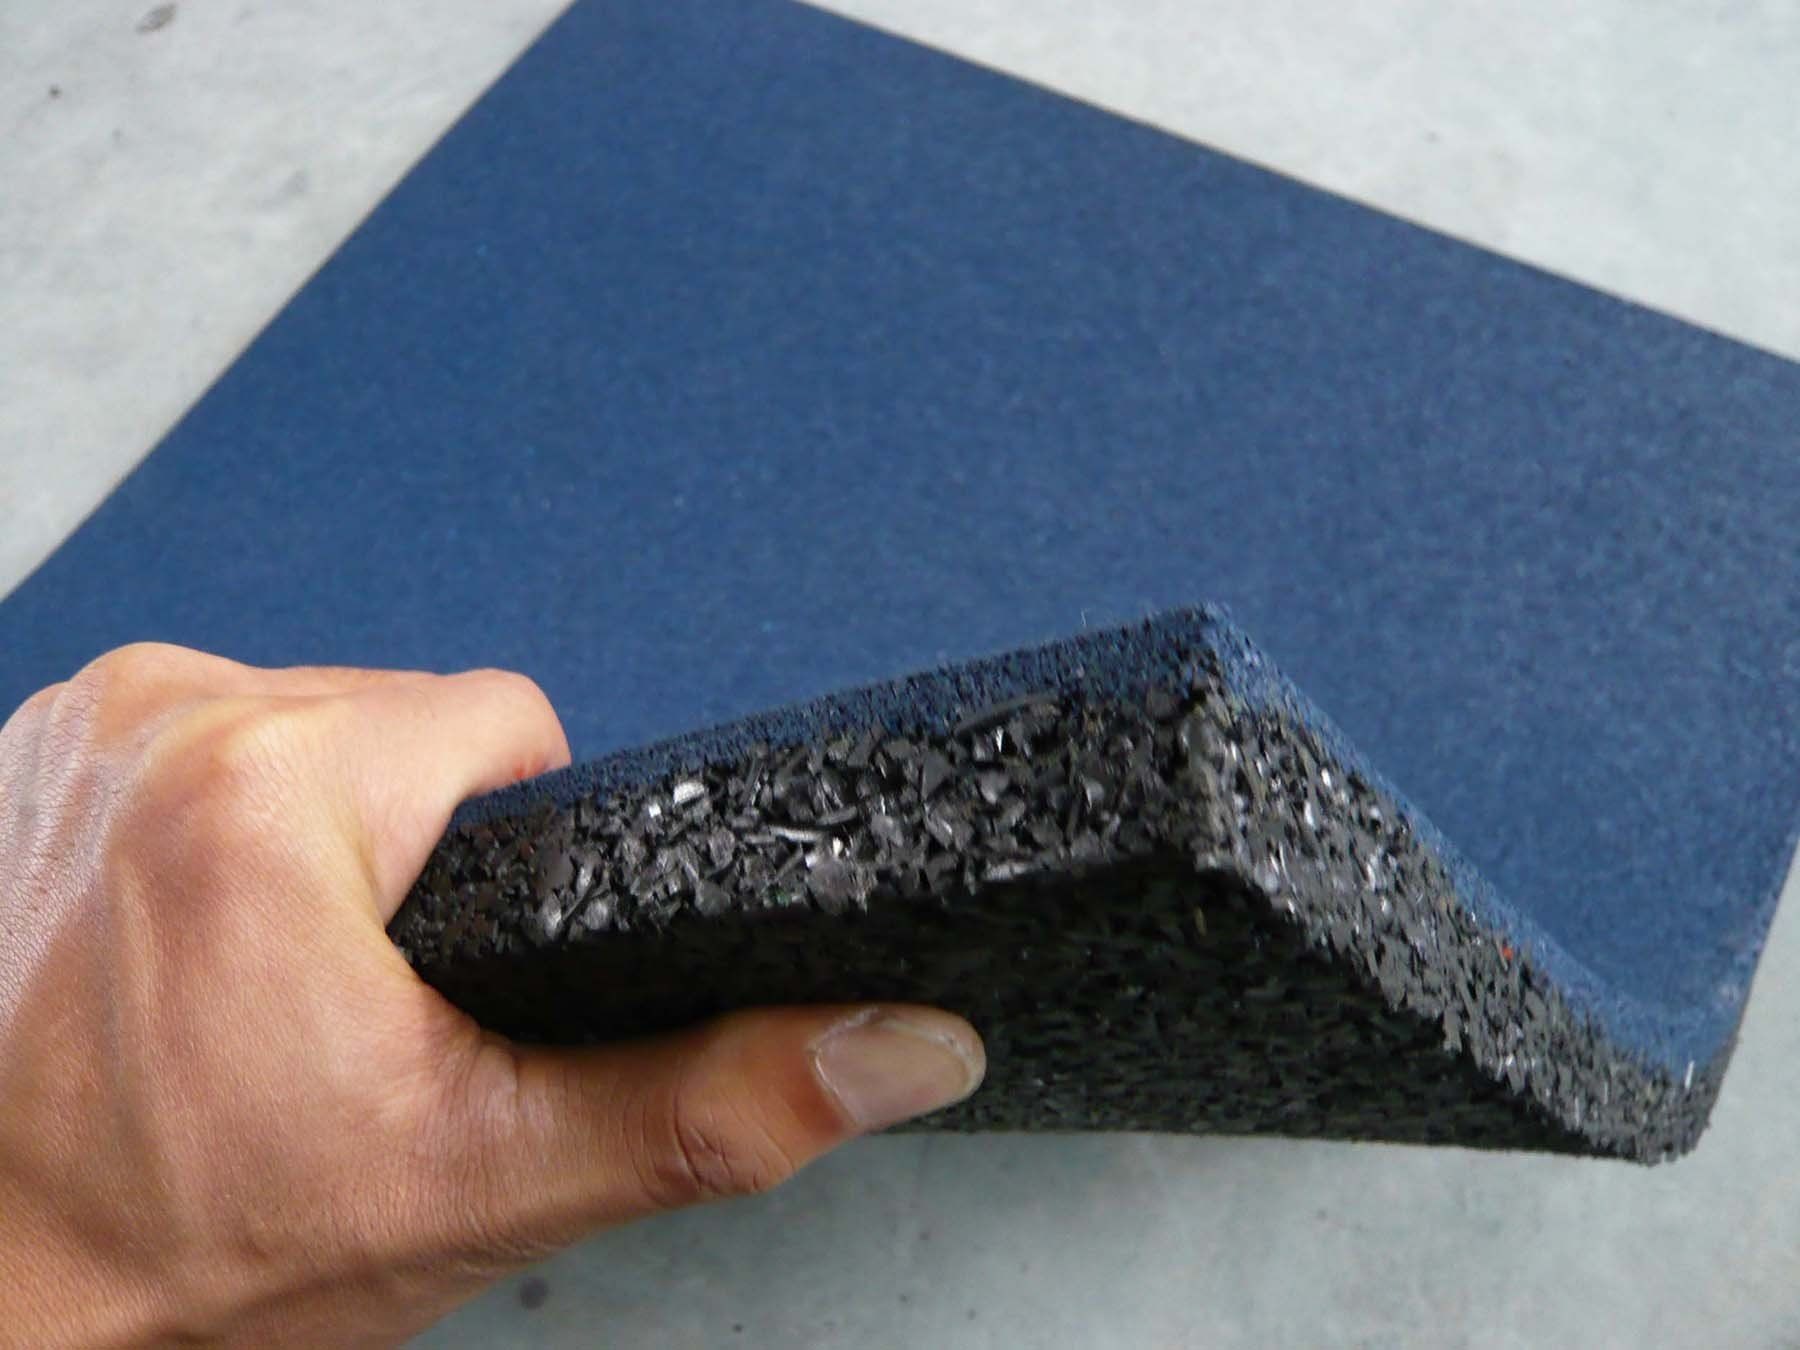 Buy Rubber flooring rubber floor matting & large rubber mats for